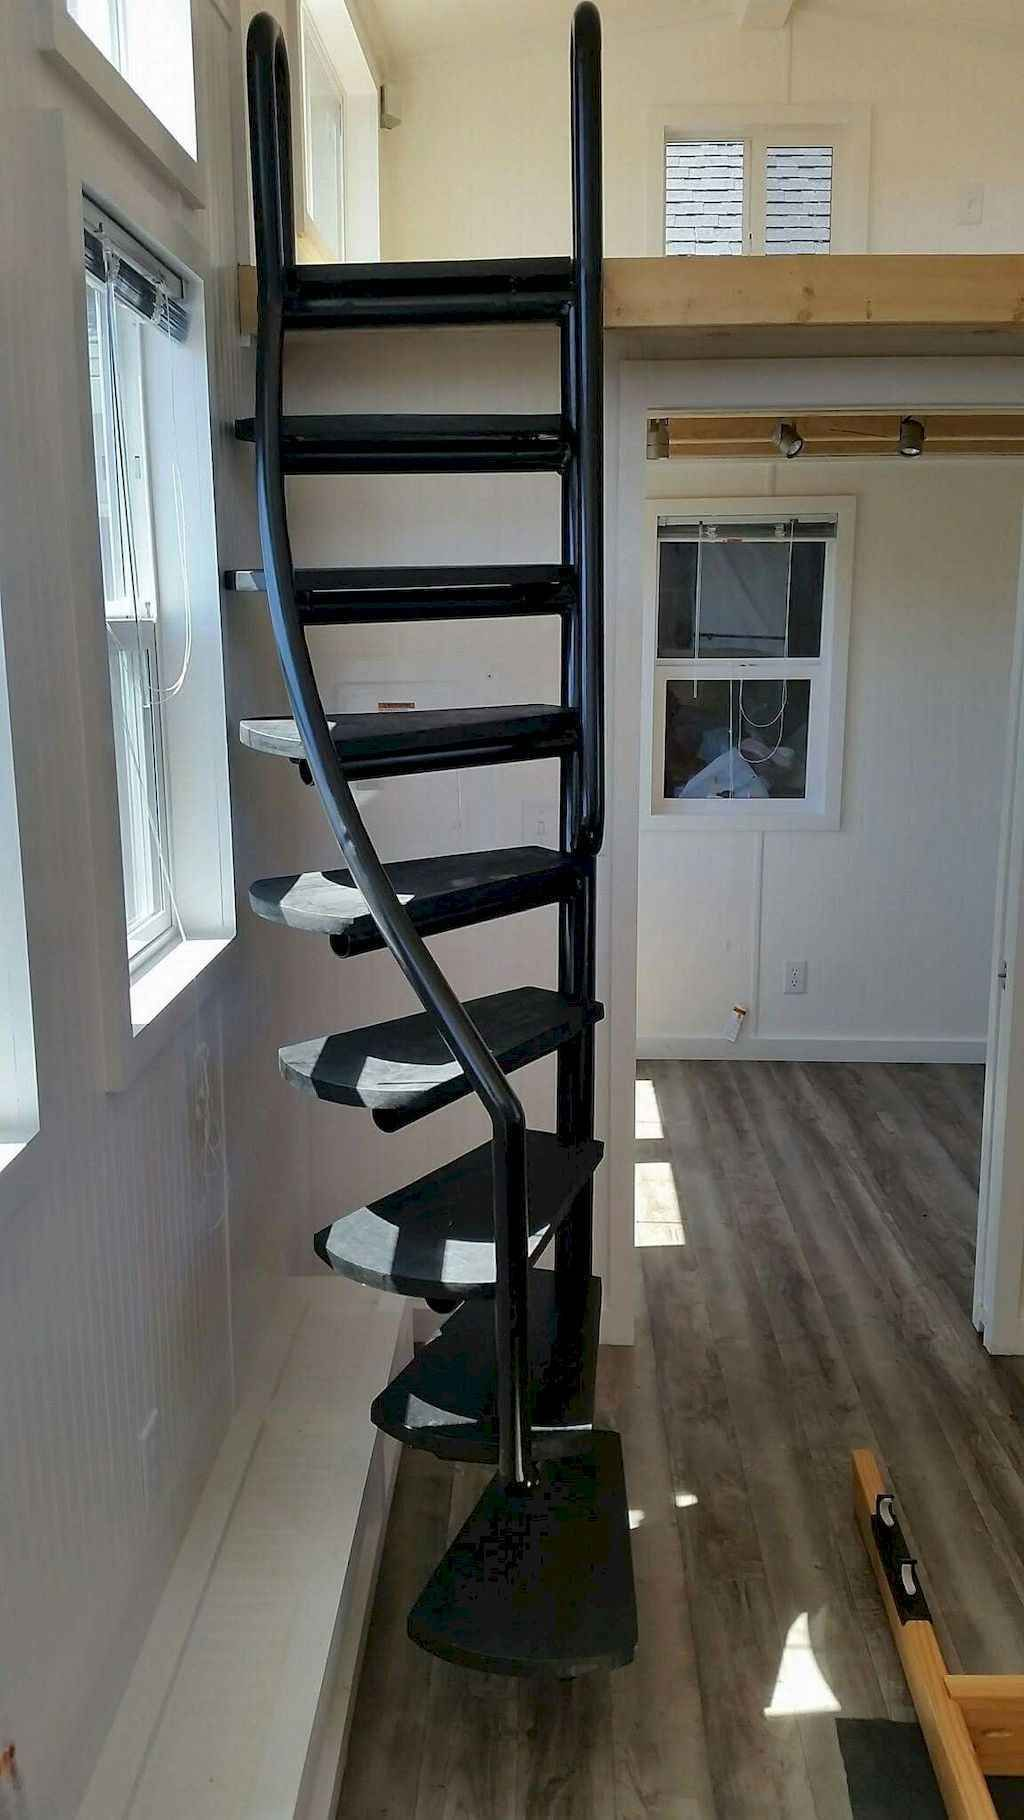 01 Amazing Loft Stair For Tiny House Ideas In 2020 Tiny House Stairs Loft Stairs Attic Ladder